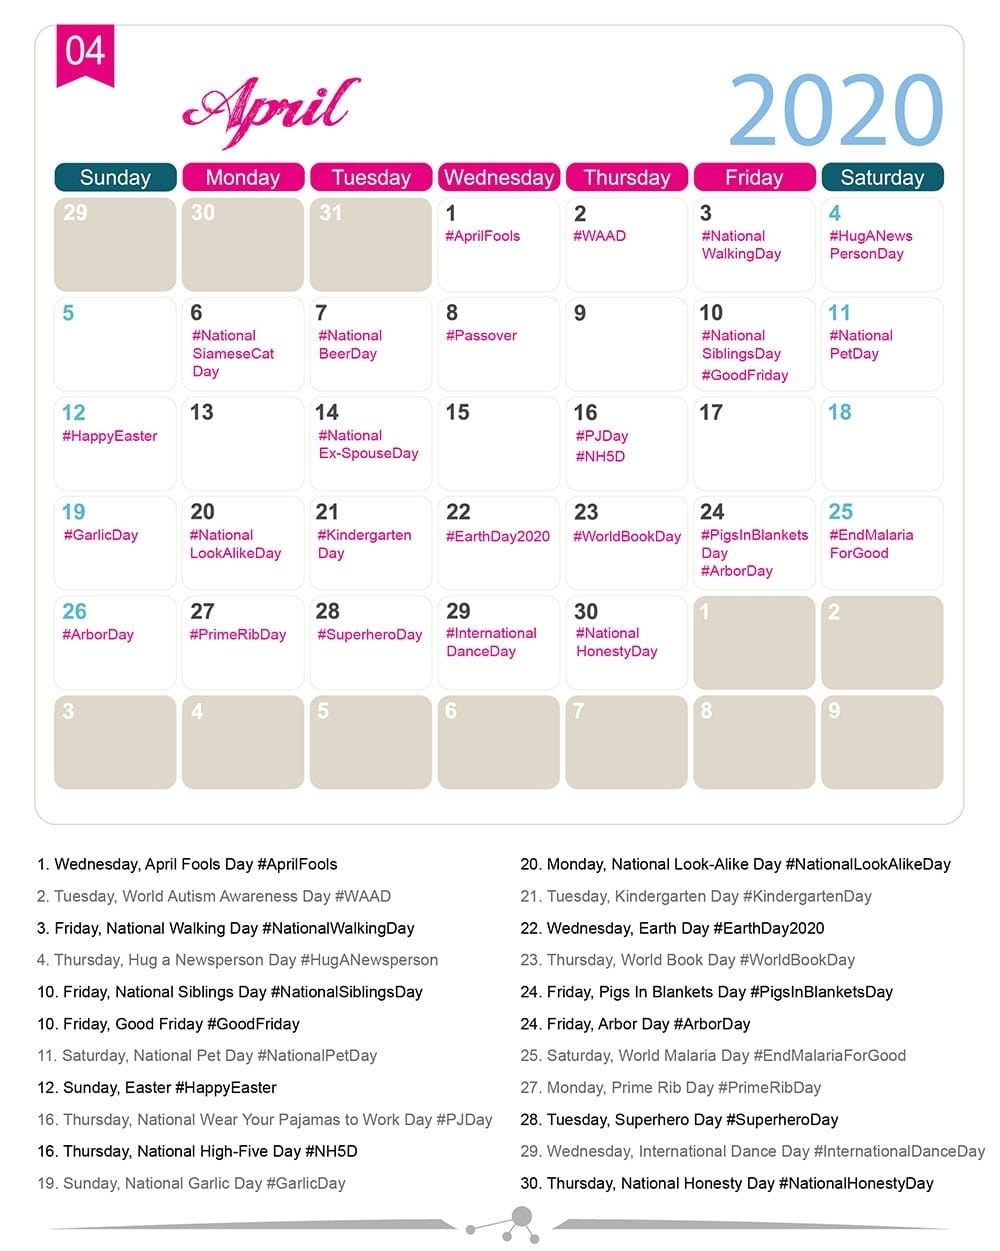 The 2020 Social Media Holiday Calendar - Make A Website Hub within Special Days Of The Year 2020 Calendar